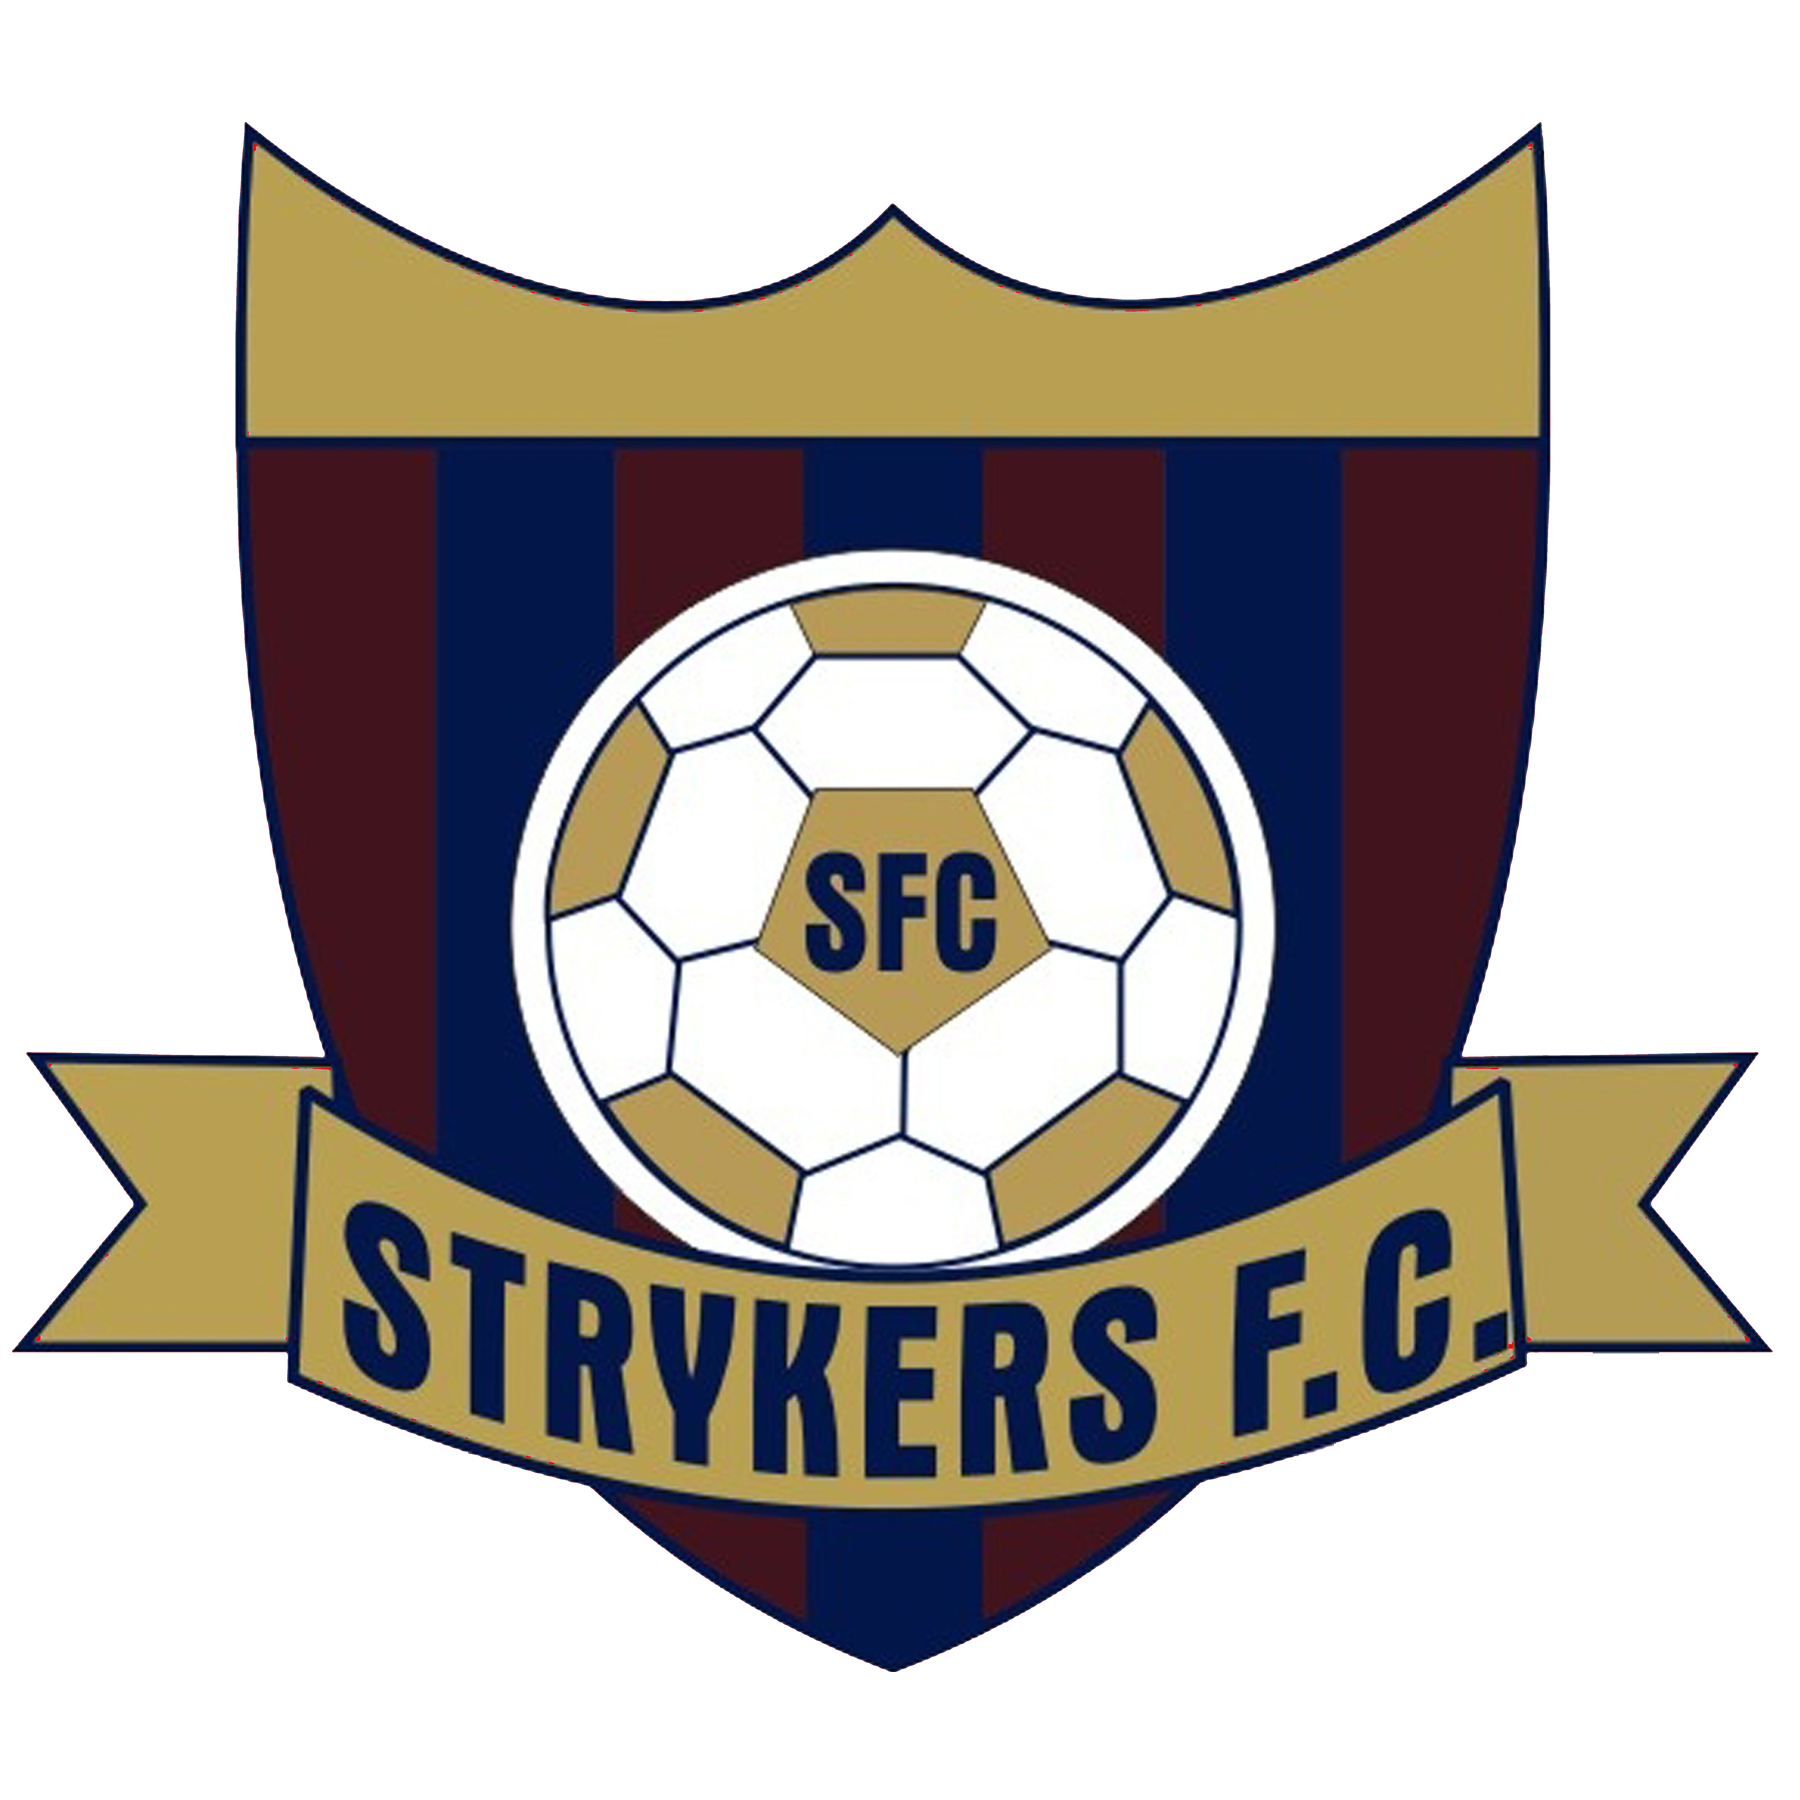 Bank of Guam Lady Strykers FC